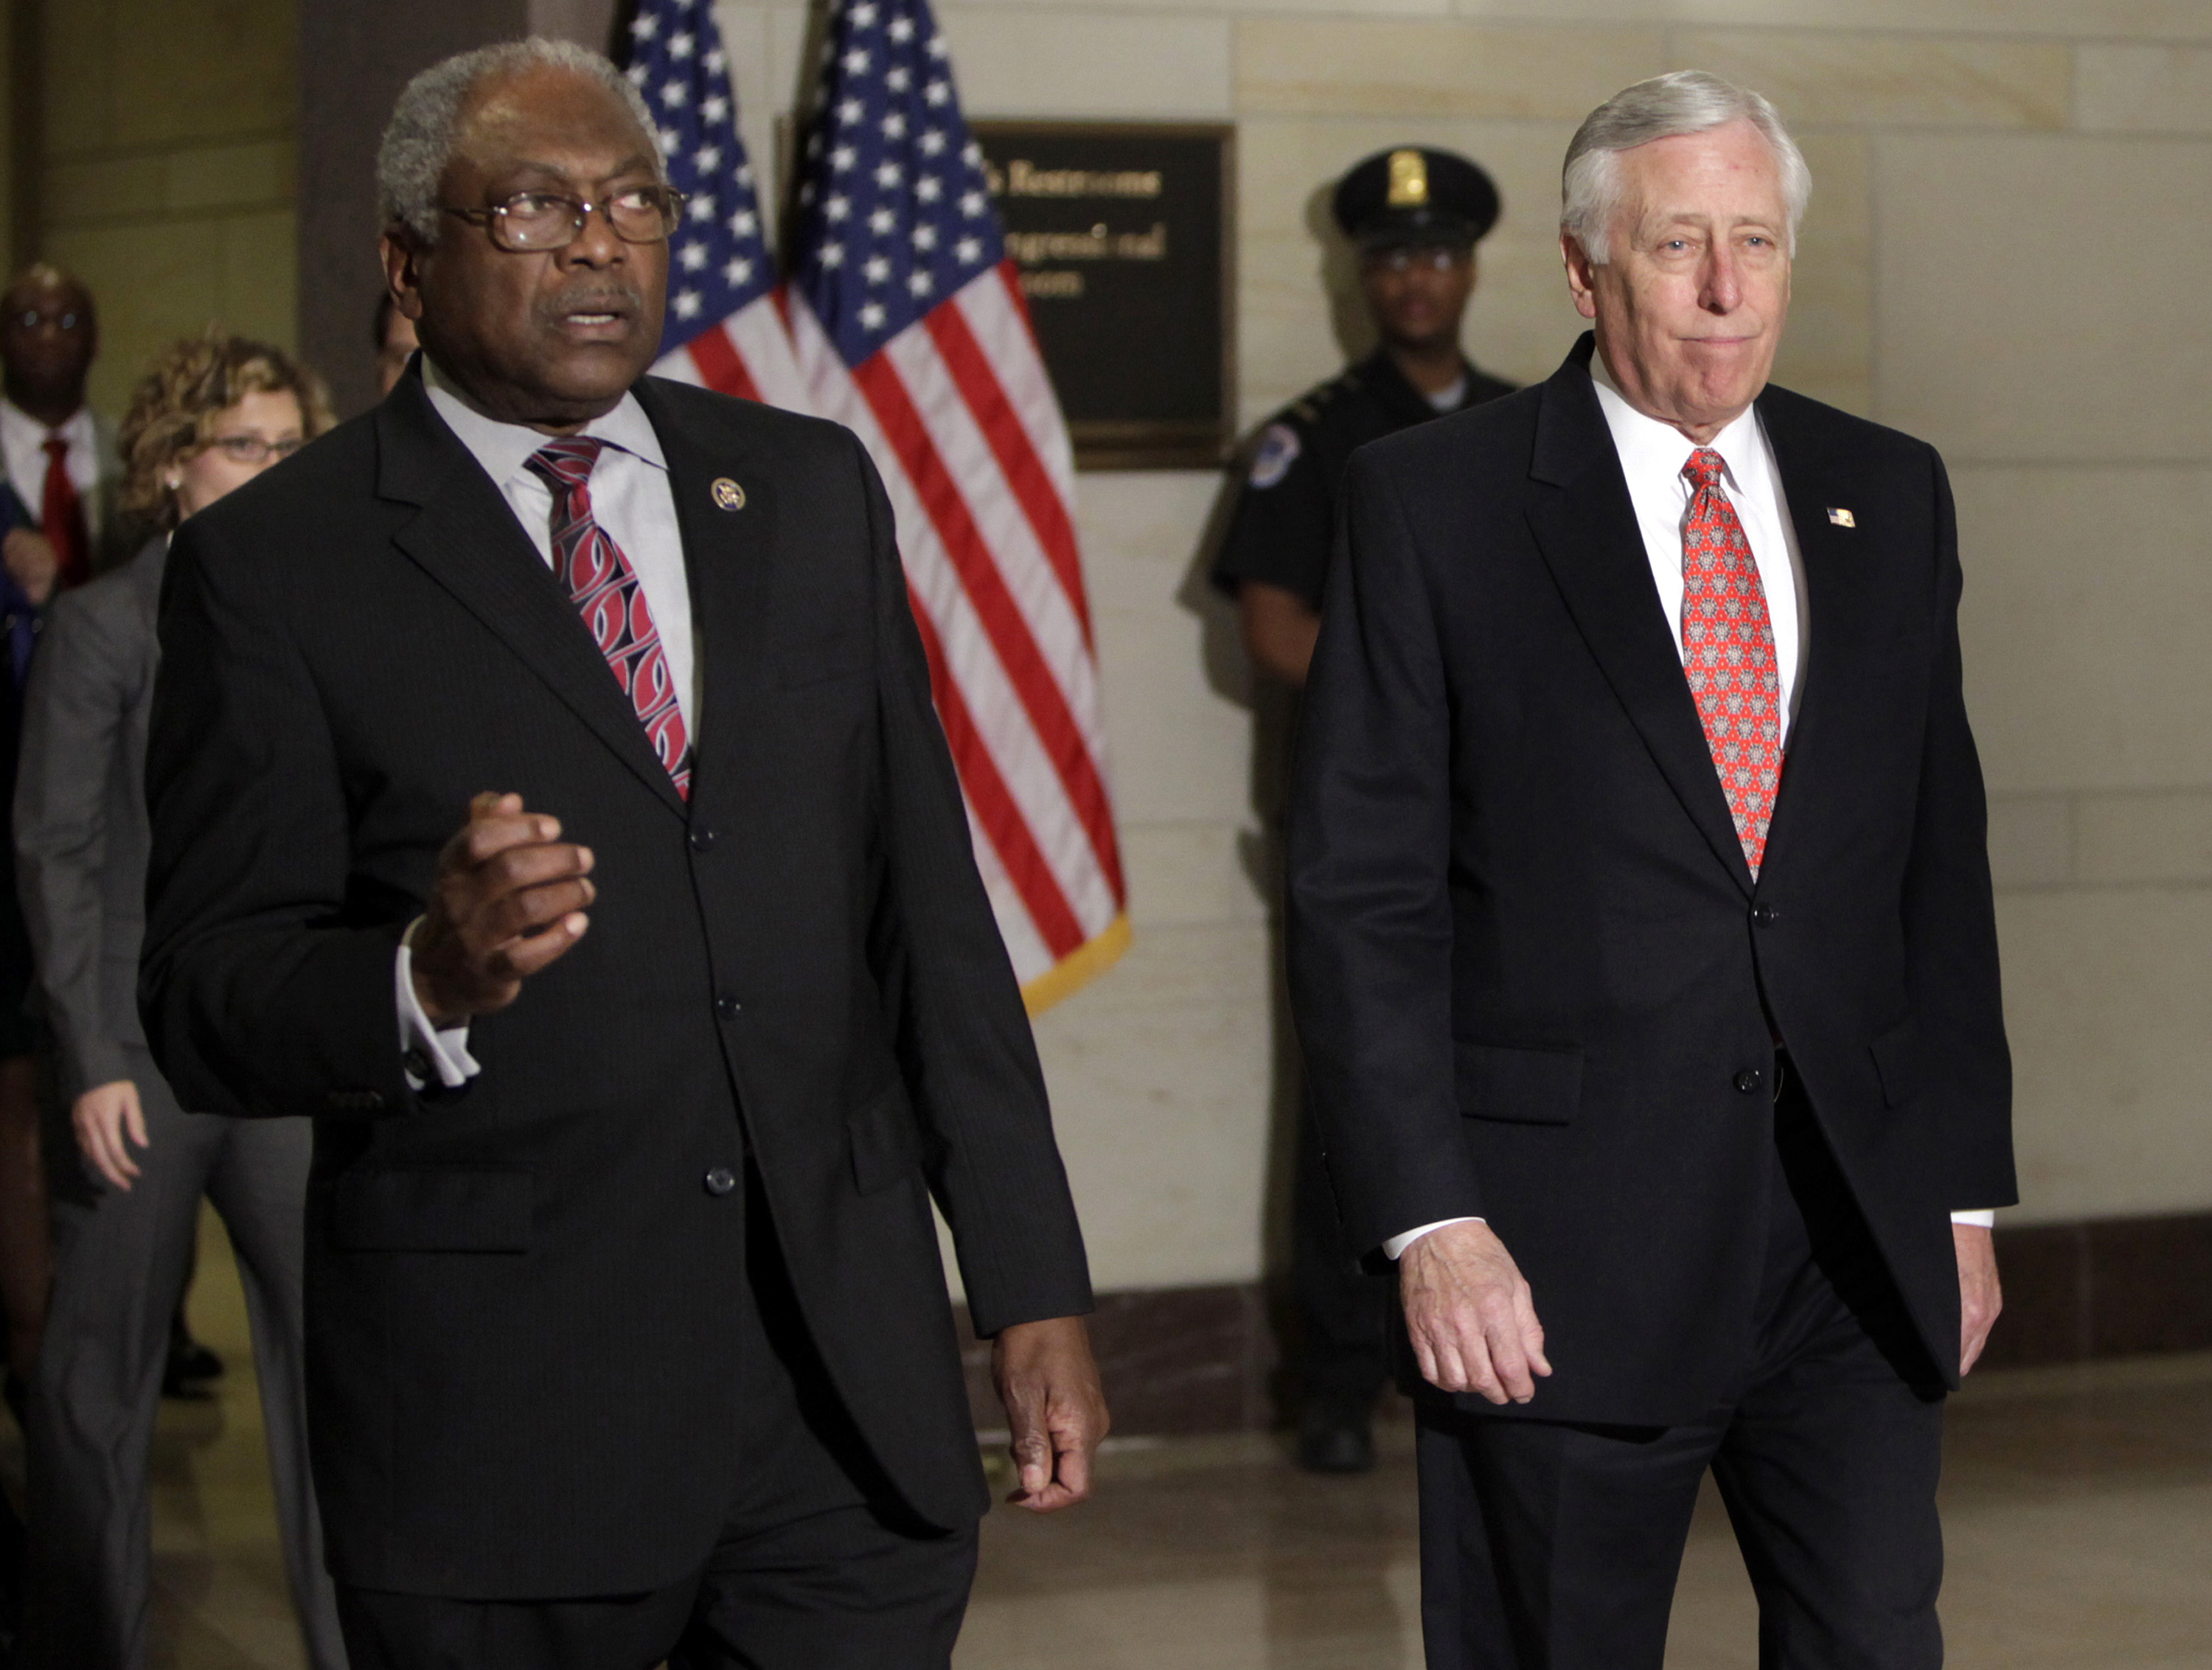 House Majority Leader Steny Hoyer and House Majority Whip James Clyburn arrive at President Barack Obama's meeting REUTERS/Yuri Gripas